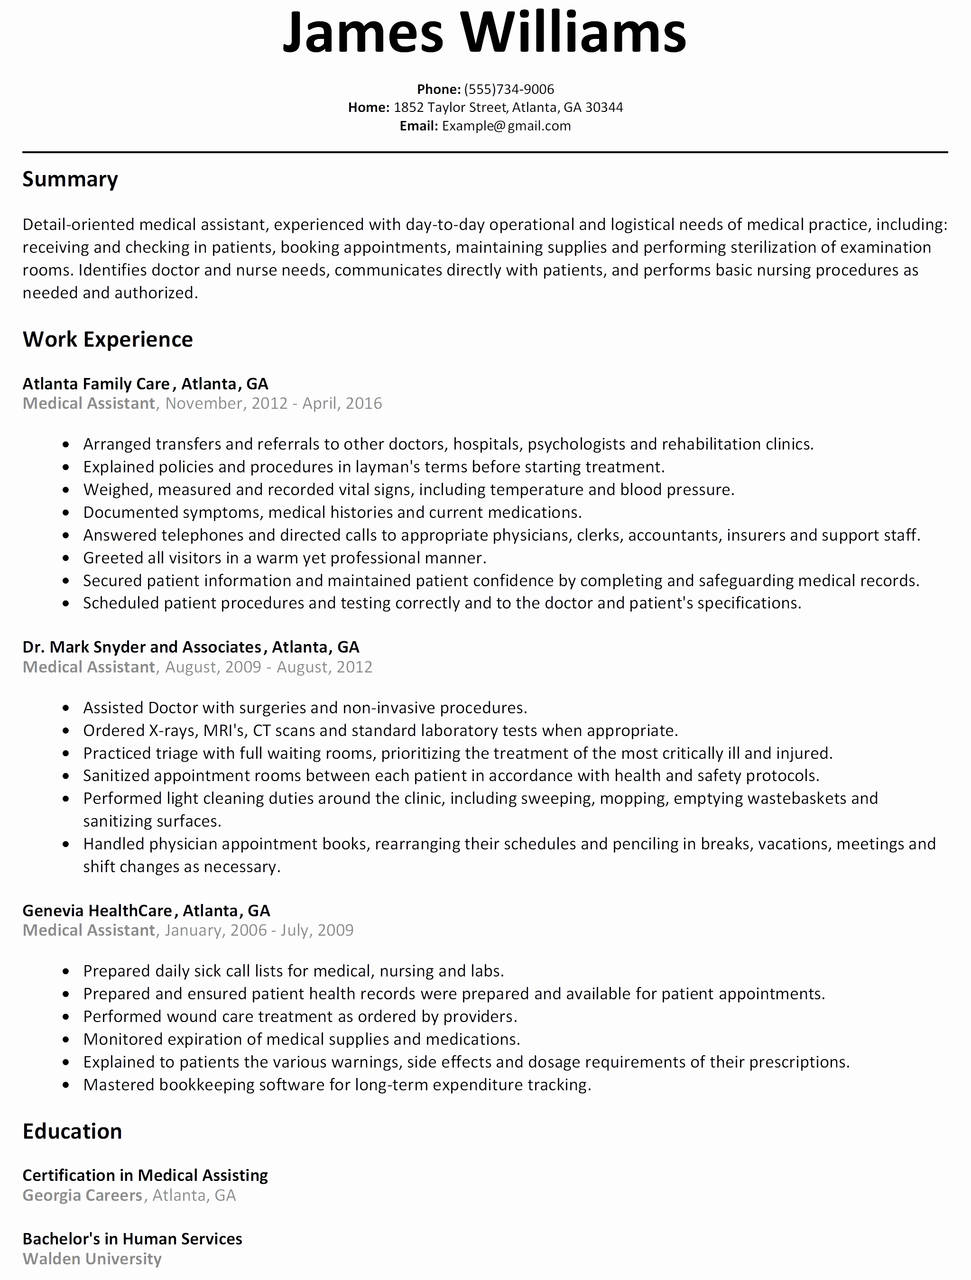 ken coleman resume template example-Resume Template Word Download New Free Resume Templates Downloads Unique Word Template Download New Od 15-g